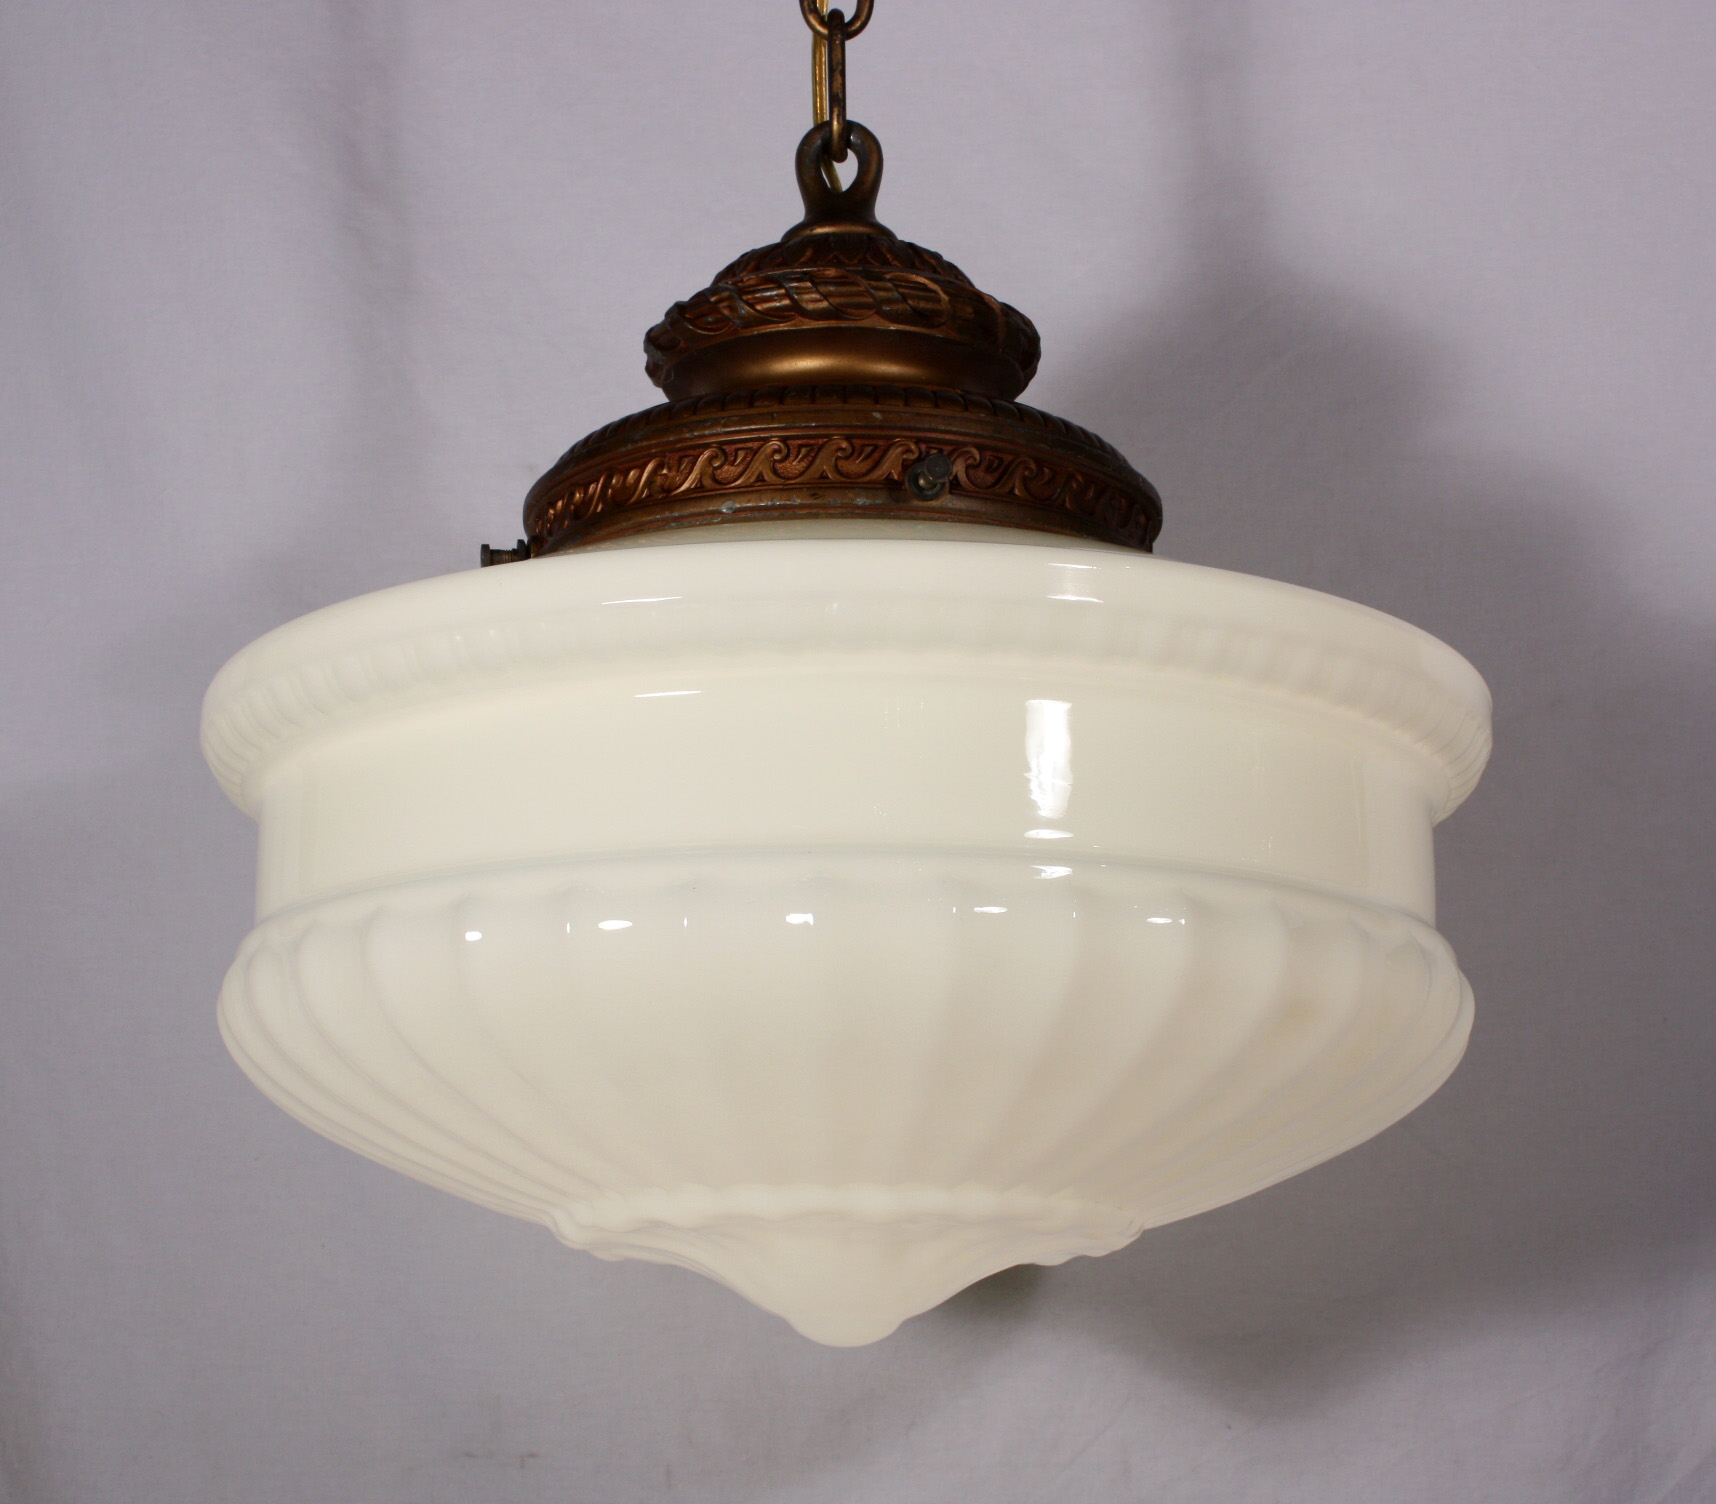 large antique pendant light fixture with original milk ForAntique Pendant Light Fixtures